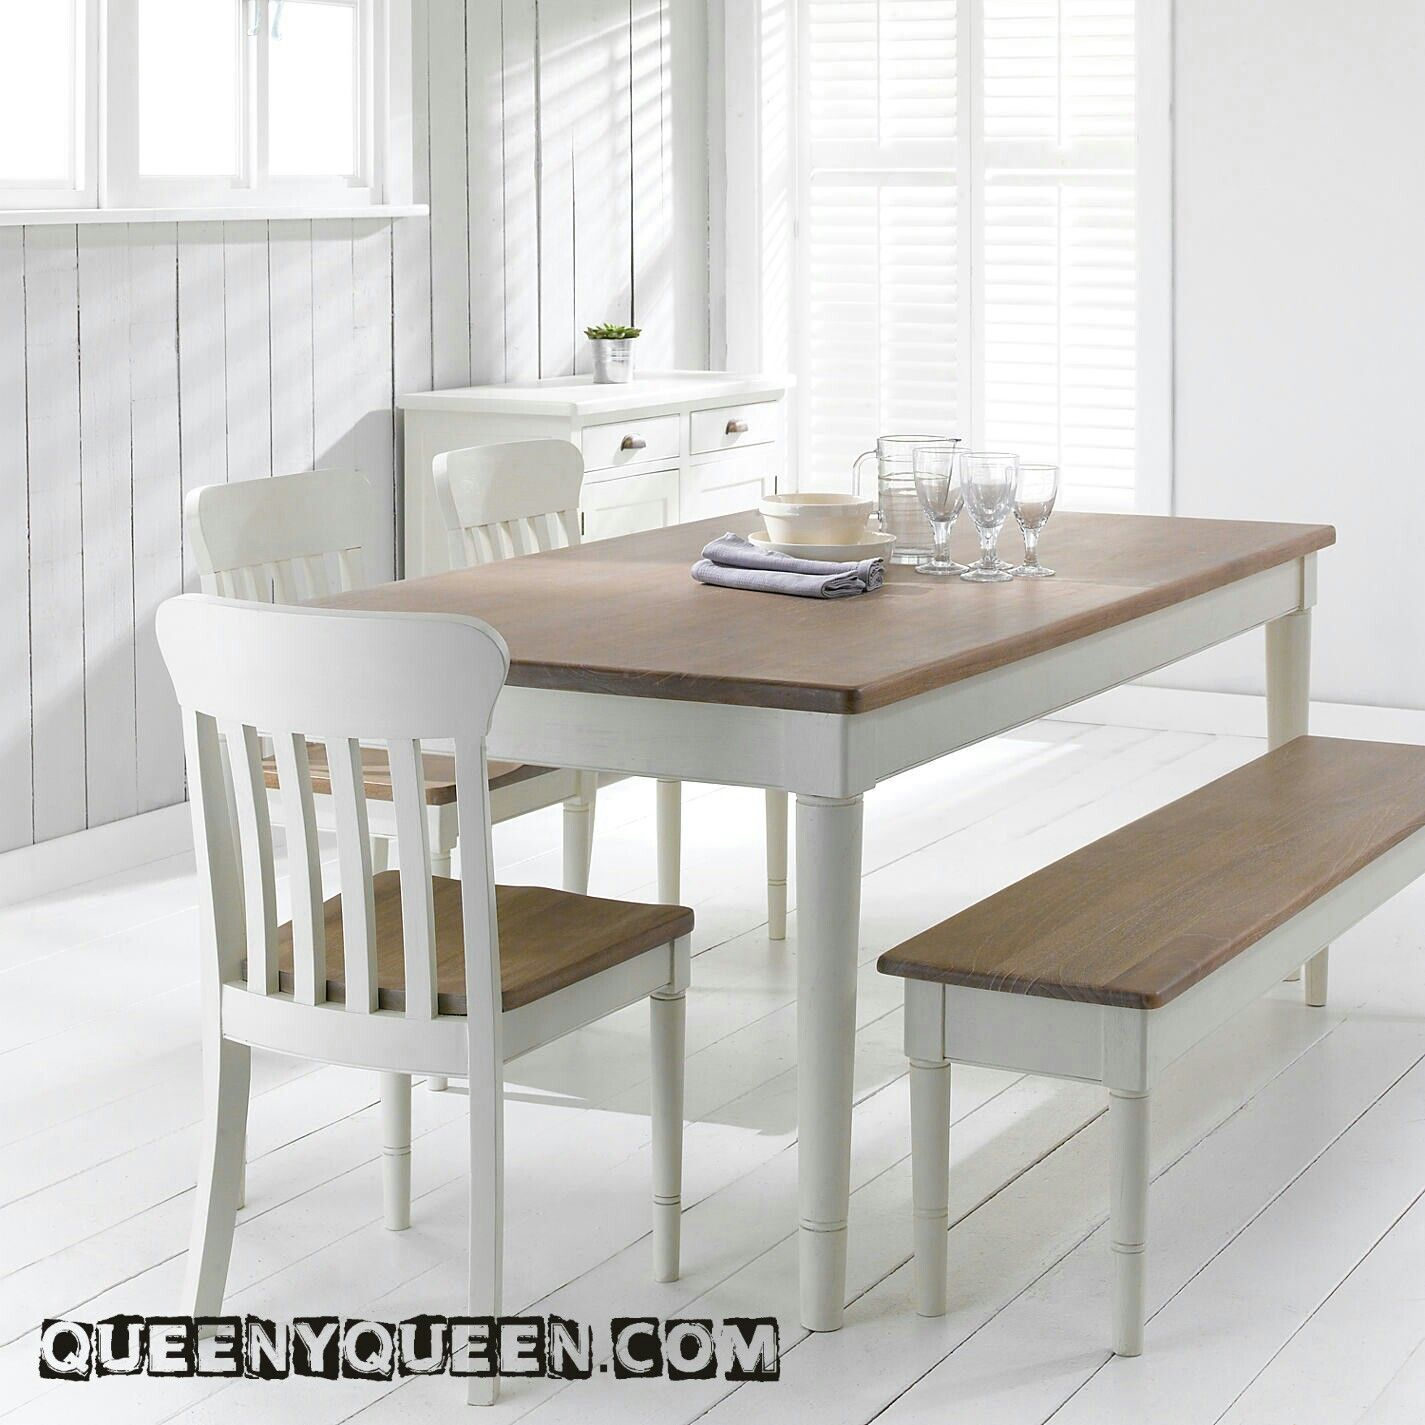 Buy John Lewis Drift Rectangular 6 Seater Dining Table Cream From Our Tables Range At